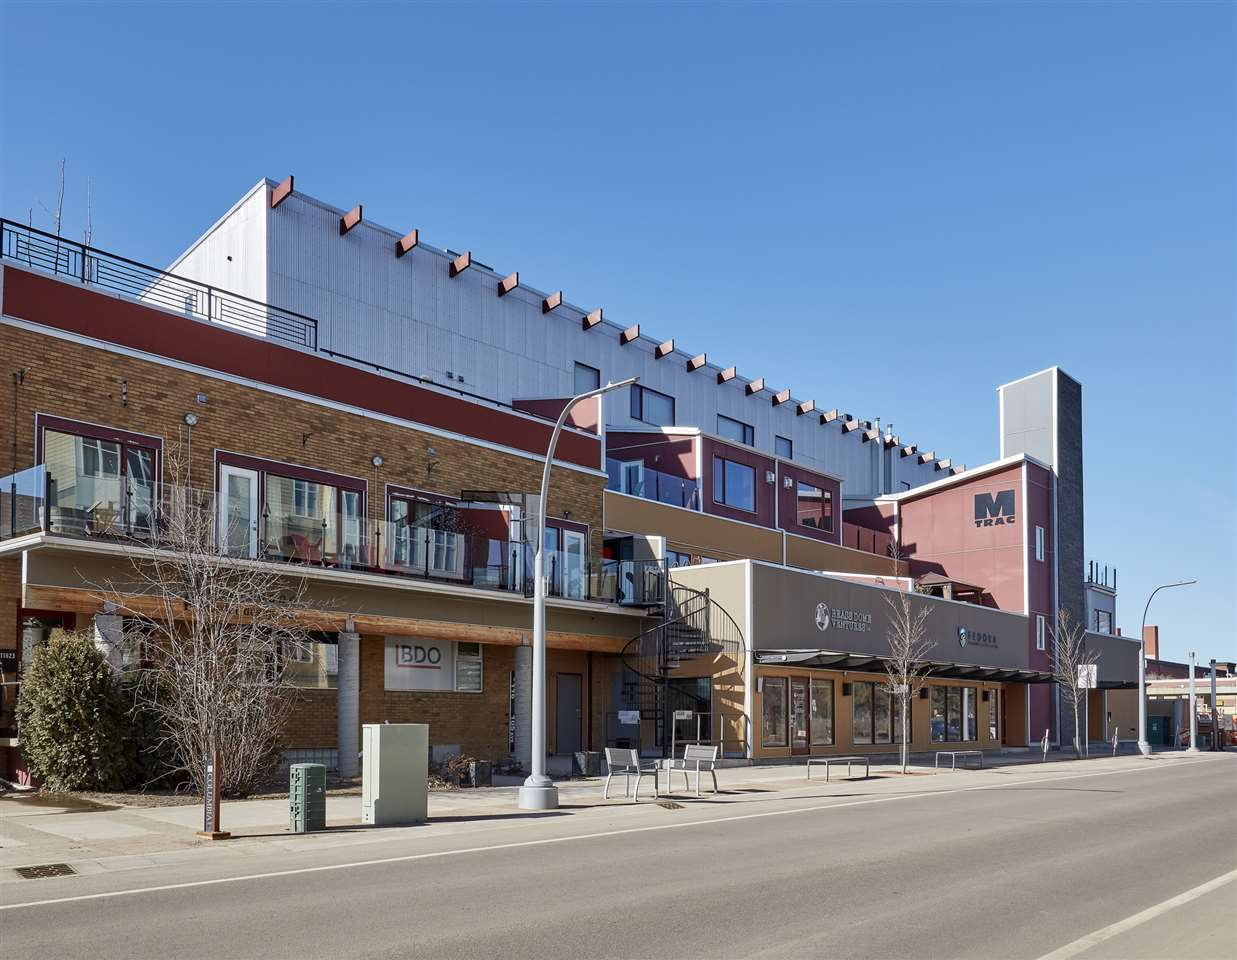 SOHO inspired lofts in the heart of YEG Brewery District. Can you imagine your own private entrance & private elevator that takes you to your top floor penthouse loft with sweeping downtown views! Over 2361sqft of finished living space ? 1 bed plus den & additional loft (mezzanine area), 2 baths ? 22 foot high ceilings & more! This stunning loft was fully renovated in 2013 to an incredible open beam modern style. Step inside, the stunning kitchen is a chef?s dream & open to the large dining area. Continue on into the large living room that is completely breath taking with floor to ceiling south facing windows. Through the patio doors ? the outdoor living space is almost 3000sqft with city views; hot tub, outdoor kitchen, dining areas & places to just relax & enjoy the views. Back inside the master bedroom is a great size with a fabulous master bath. The den is bright & open, can be used as a bedroom, 4 piece bath, 2 parking stalls & separate storage unit complete this executive loft! Walk to every amenity